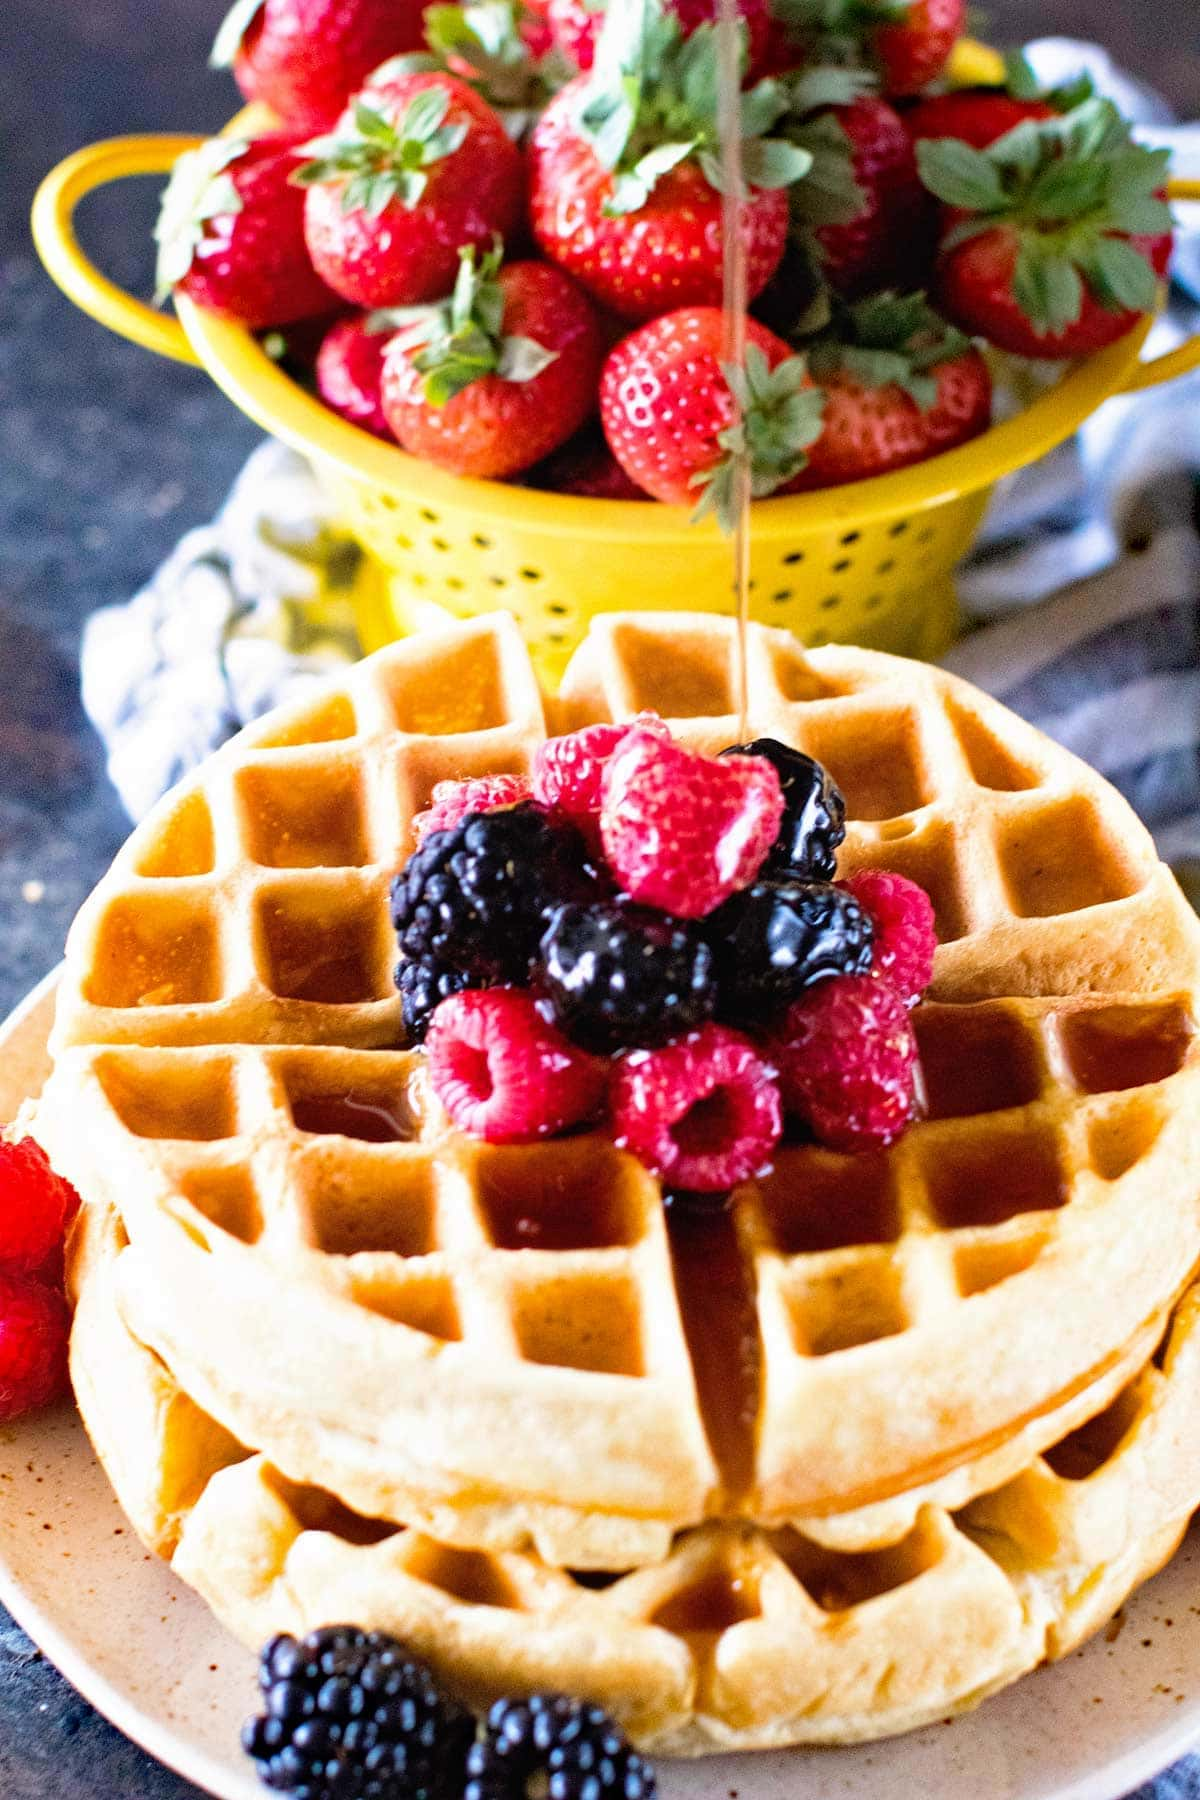 fluffy waffle recipe topped with fruit and drizzled with syrup.